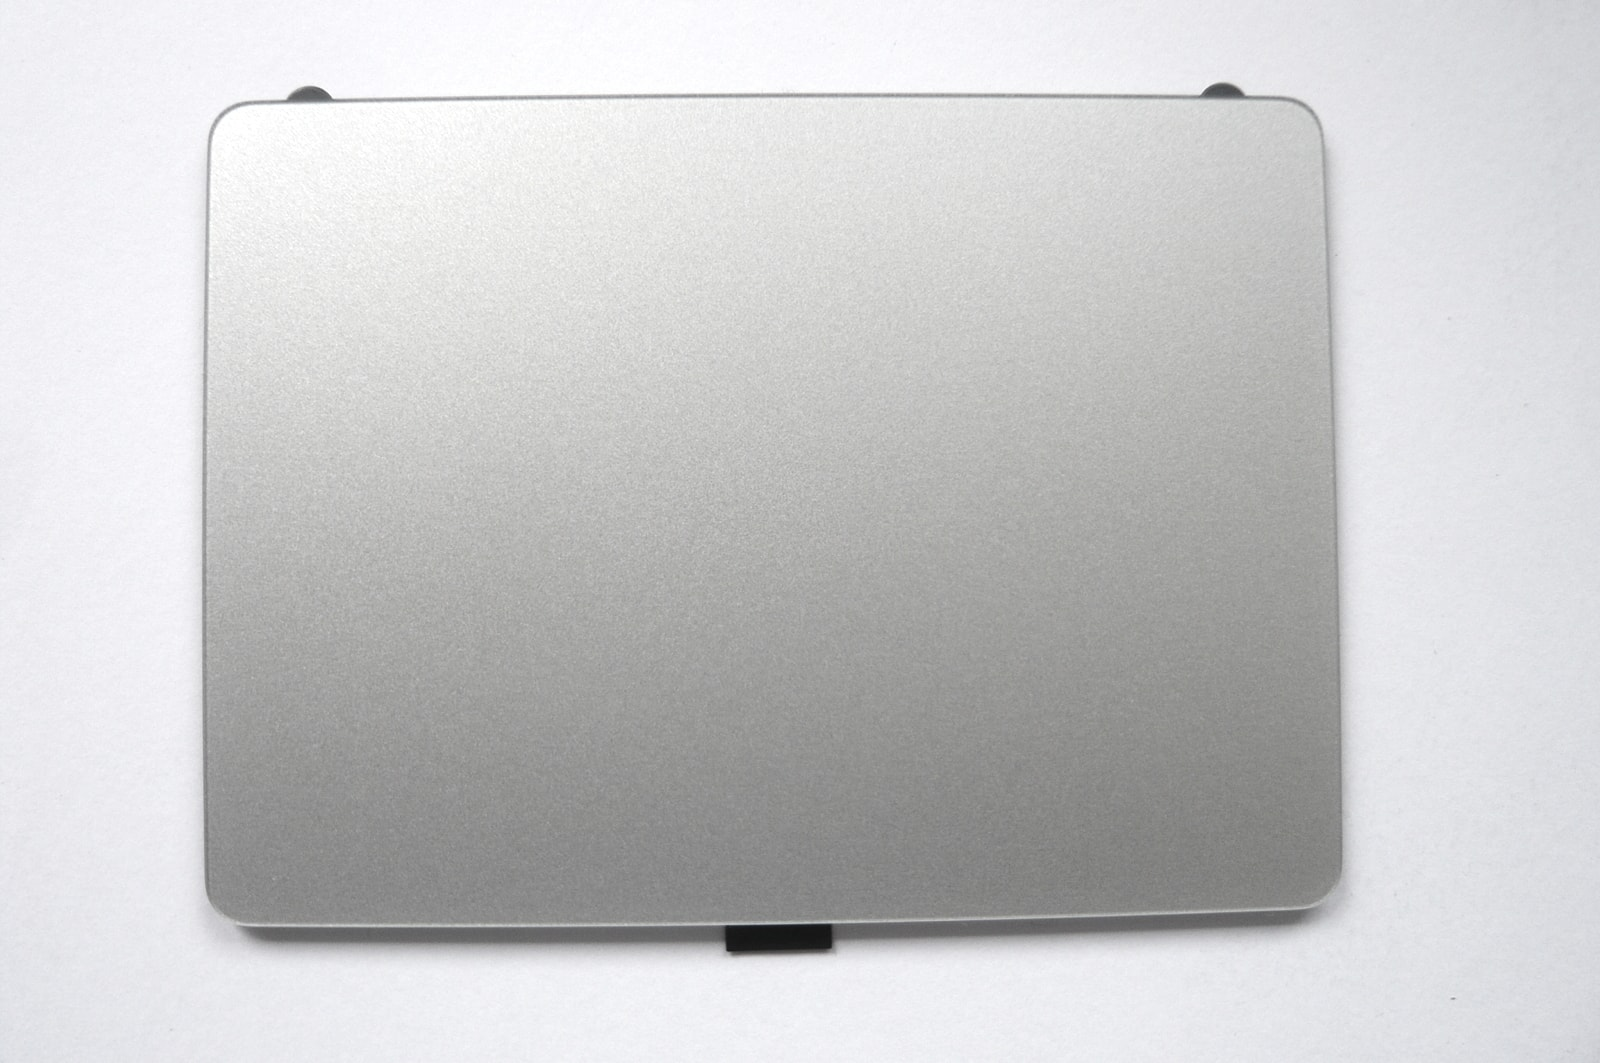 Trackpad 922 9014 922 9008 922 9009 922 9826 Macbook Pro A1278 A1286 A1297 Silver Without Cable Original Realrecyclers